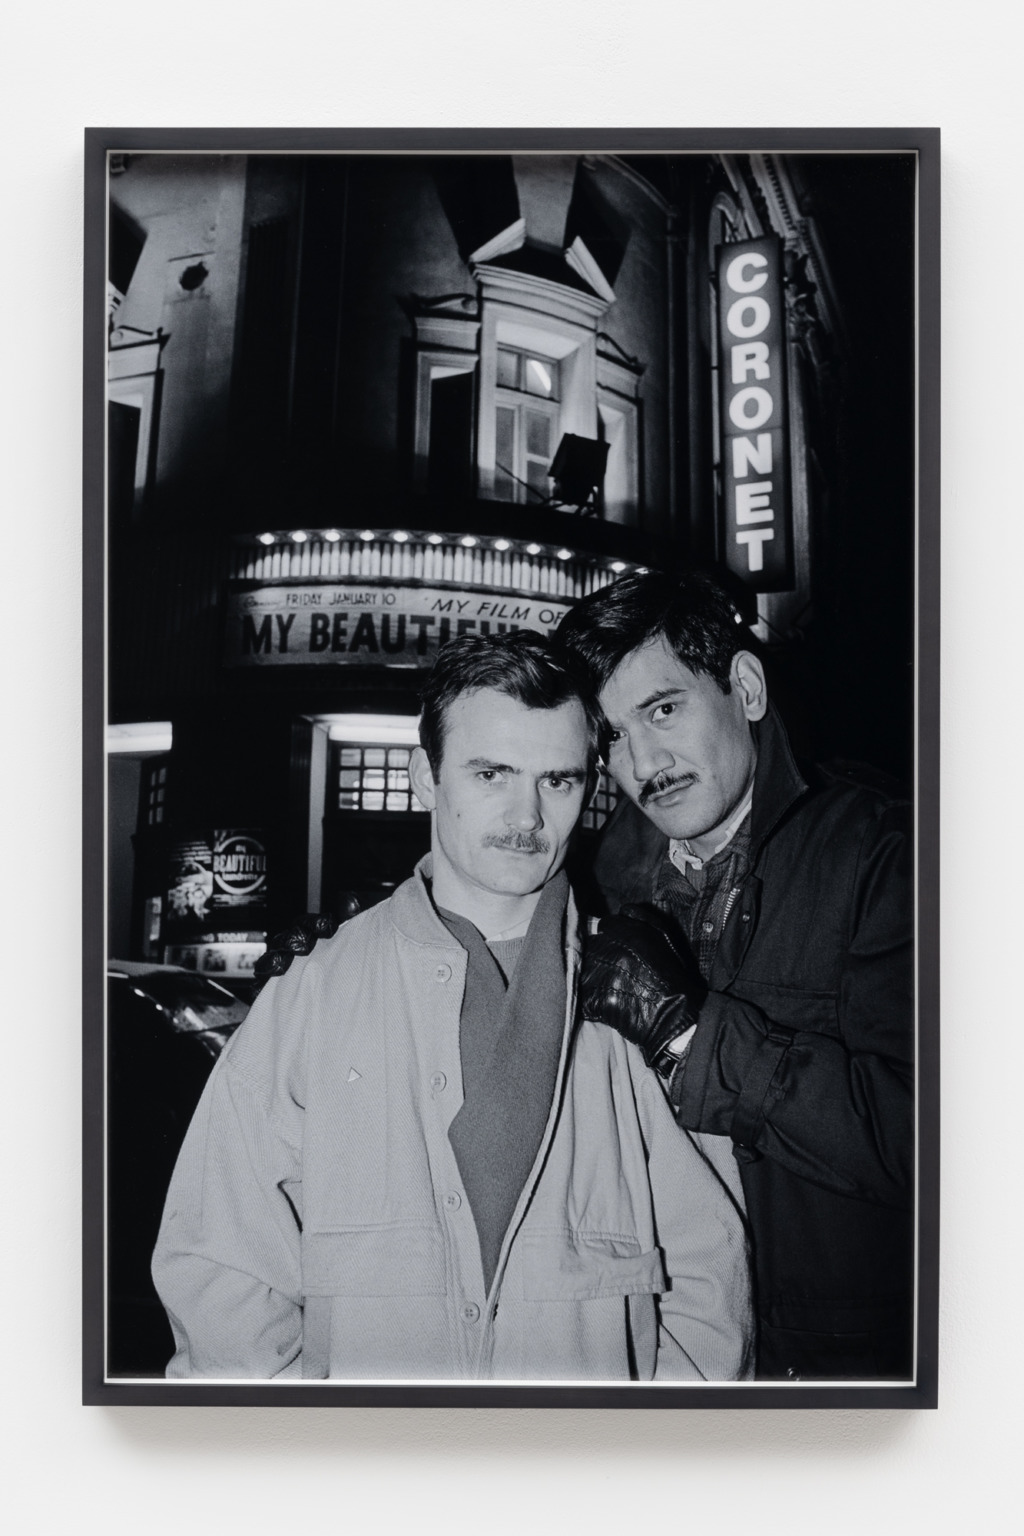 Black and white photograph of two men looking into the camera, standing with their heads touching, in front of a theatre with a lit sign that reads 'Coronet'. Above the door is a sign that reads 'My beautiful-'. The men are dressed in outdoor jackets and scarves. One has his hands in his pockets, the other rests his gloved hands on that man's shoulders.